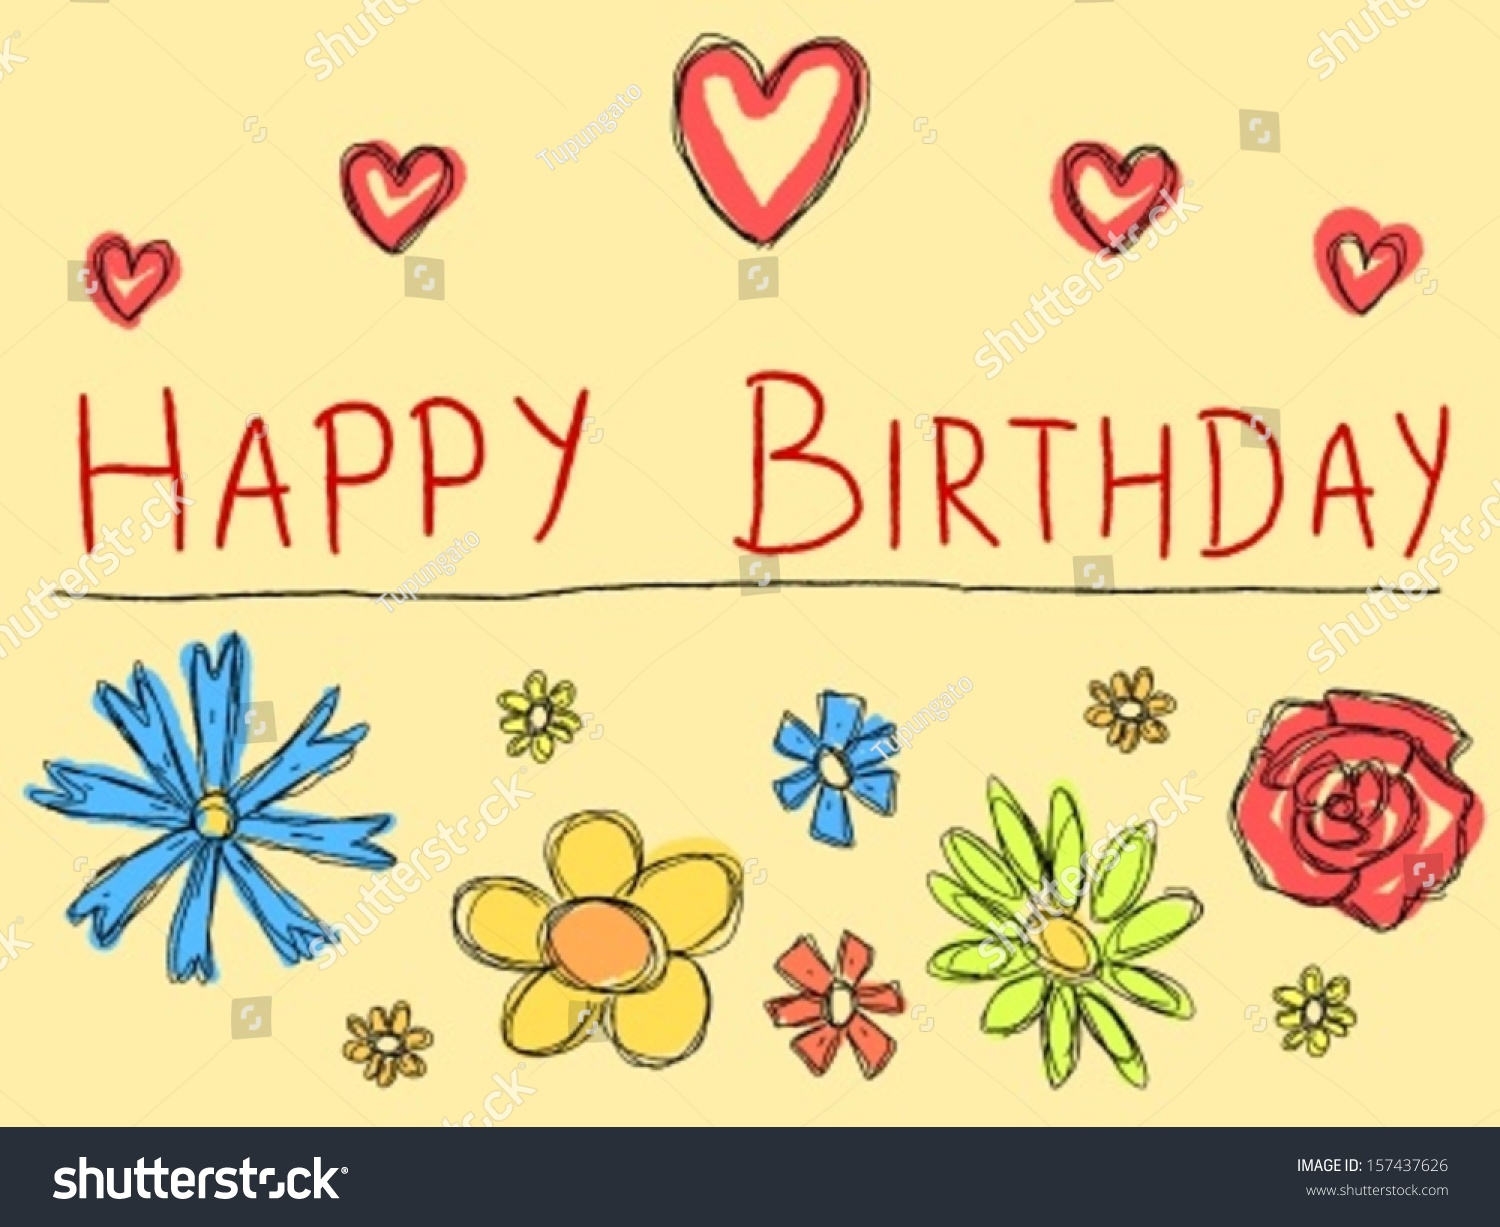 Happy birthday greeting card with doodle scrapbook flowers holiday